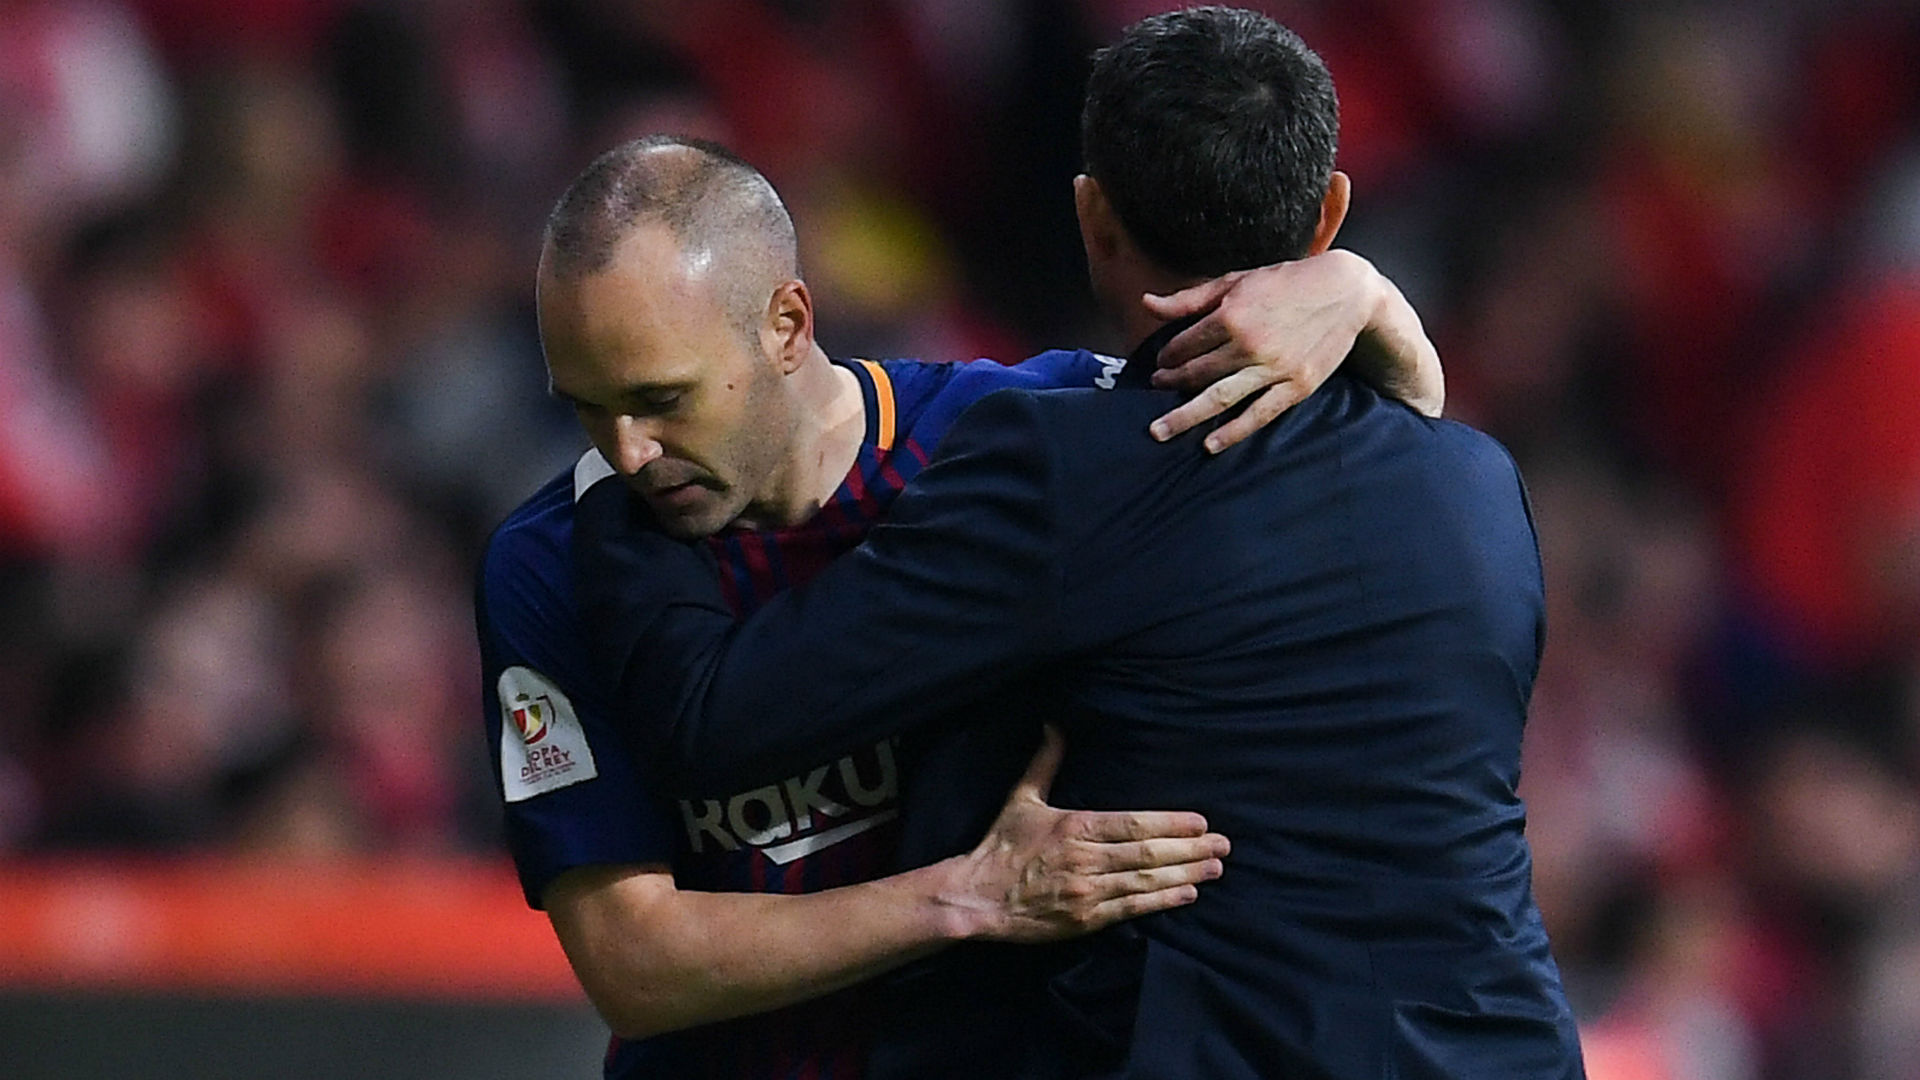 Barca great Iniesta urges club to respect Valverde amid 'ugly' saga